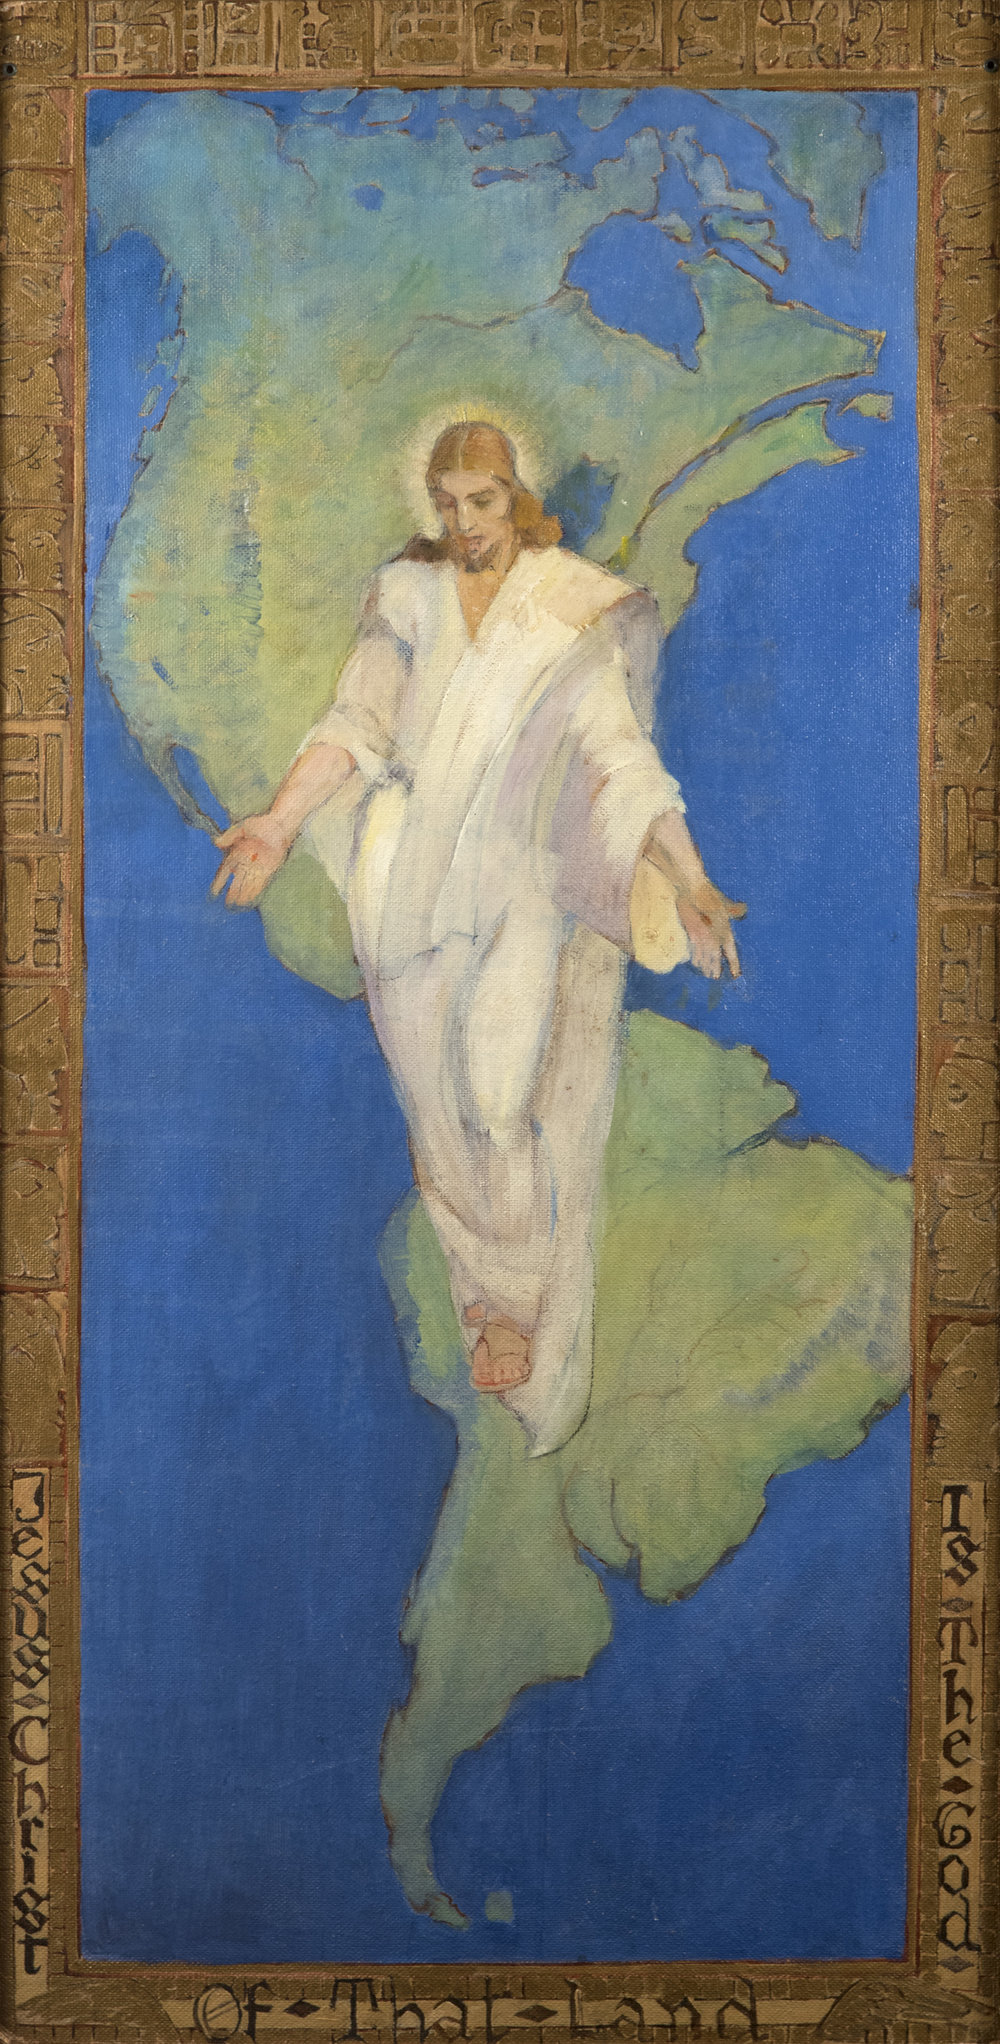 Jesus Christ is the God of that Land by MINERVA TEICHERT.  Oil on Board. 48 x 24 in. Collection of Springville Museum of Art